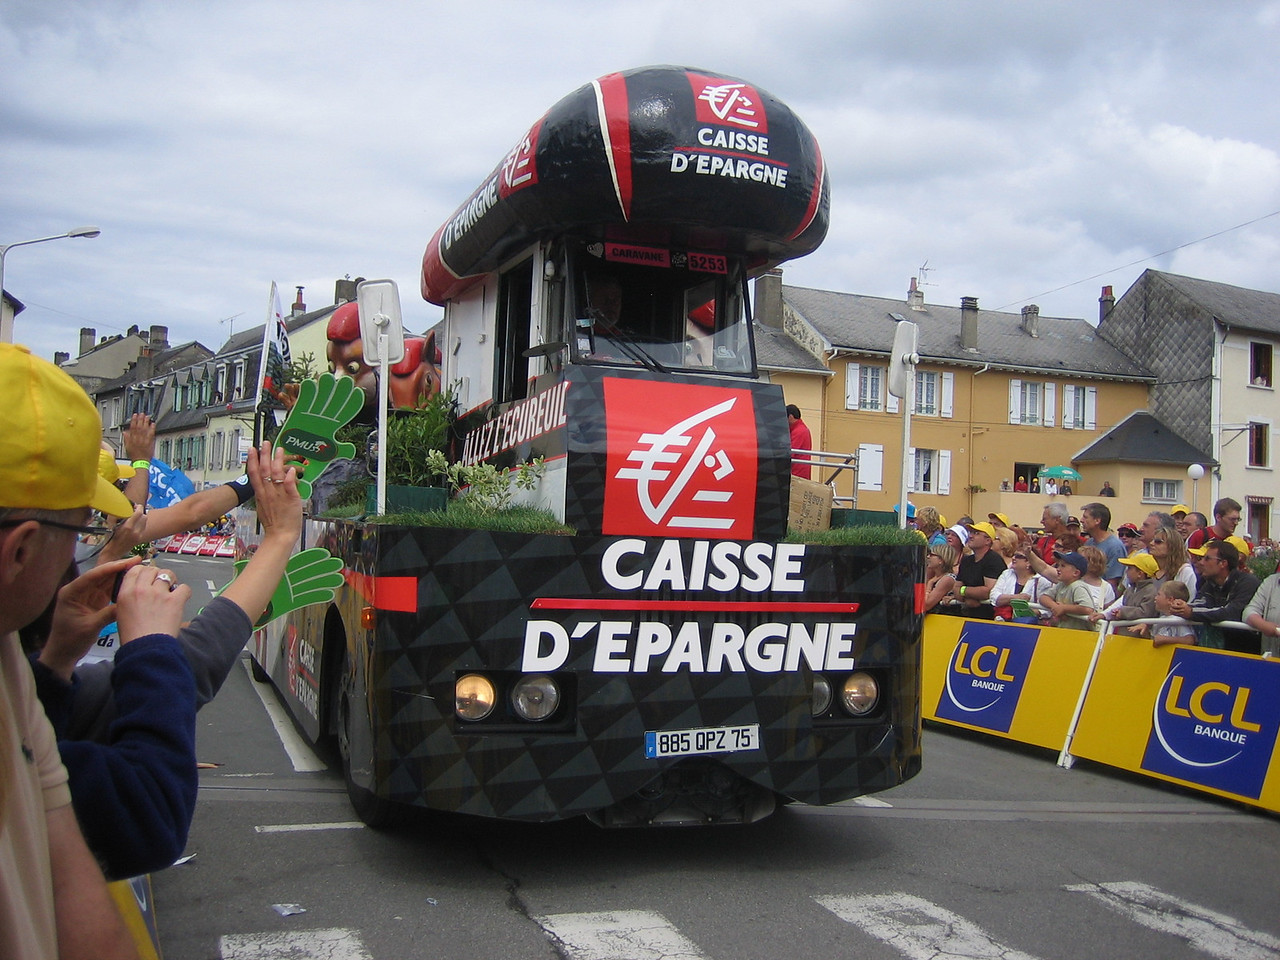 Caisse D'Epargne is a bank, but why is their float a train full of animals??